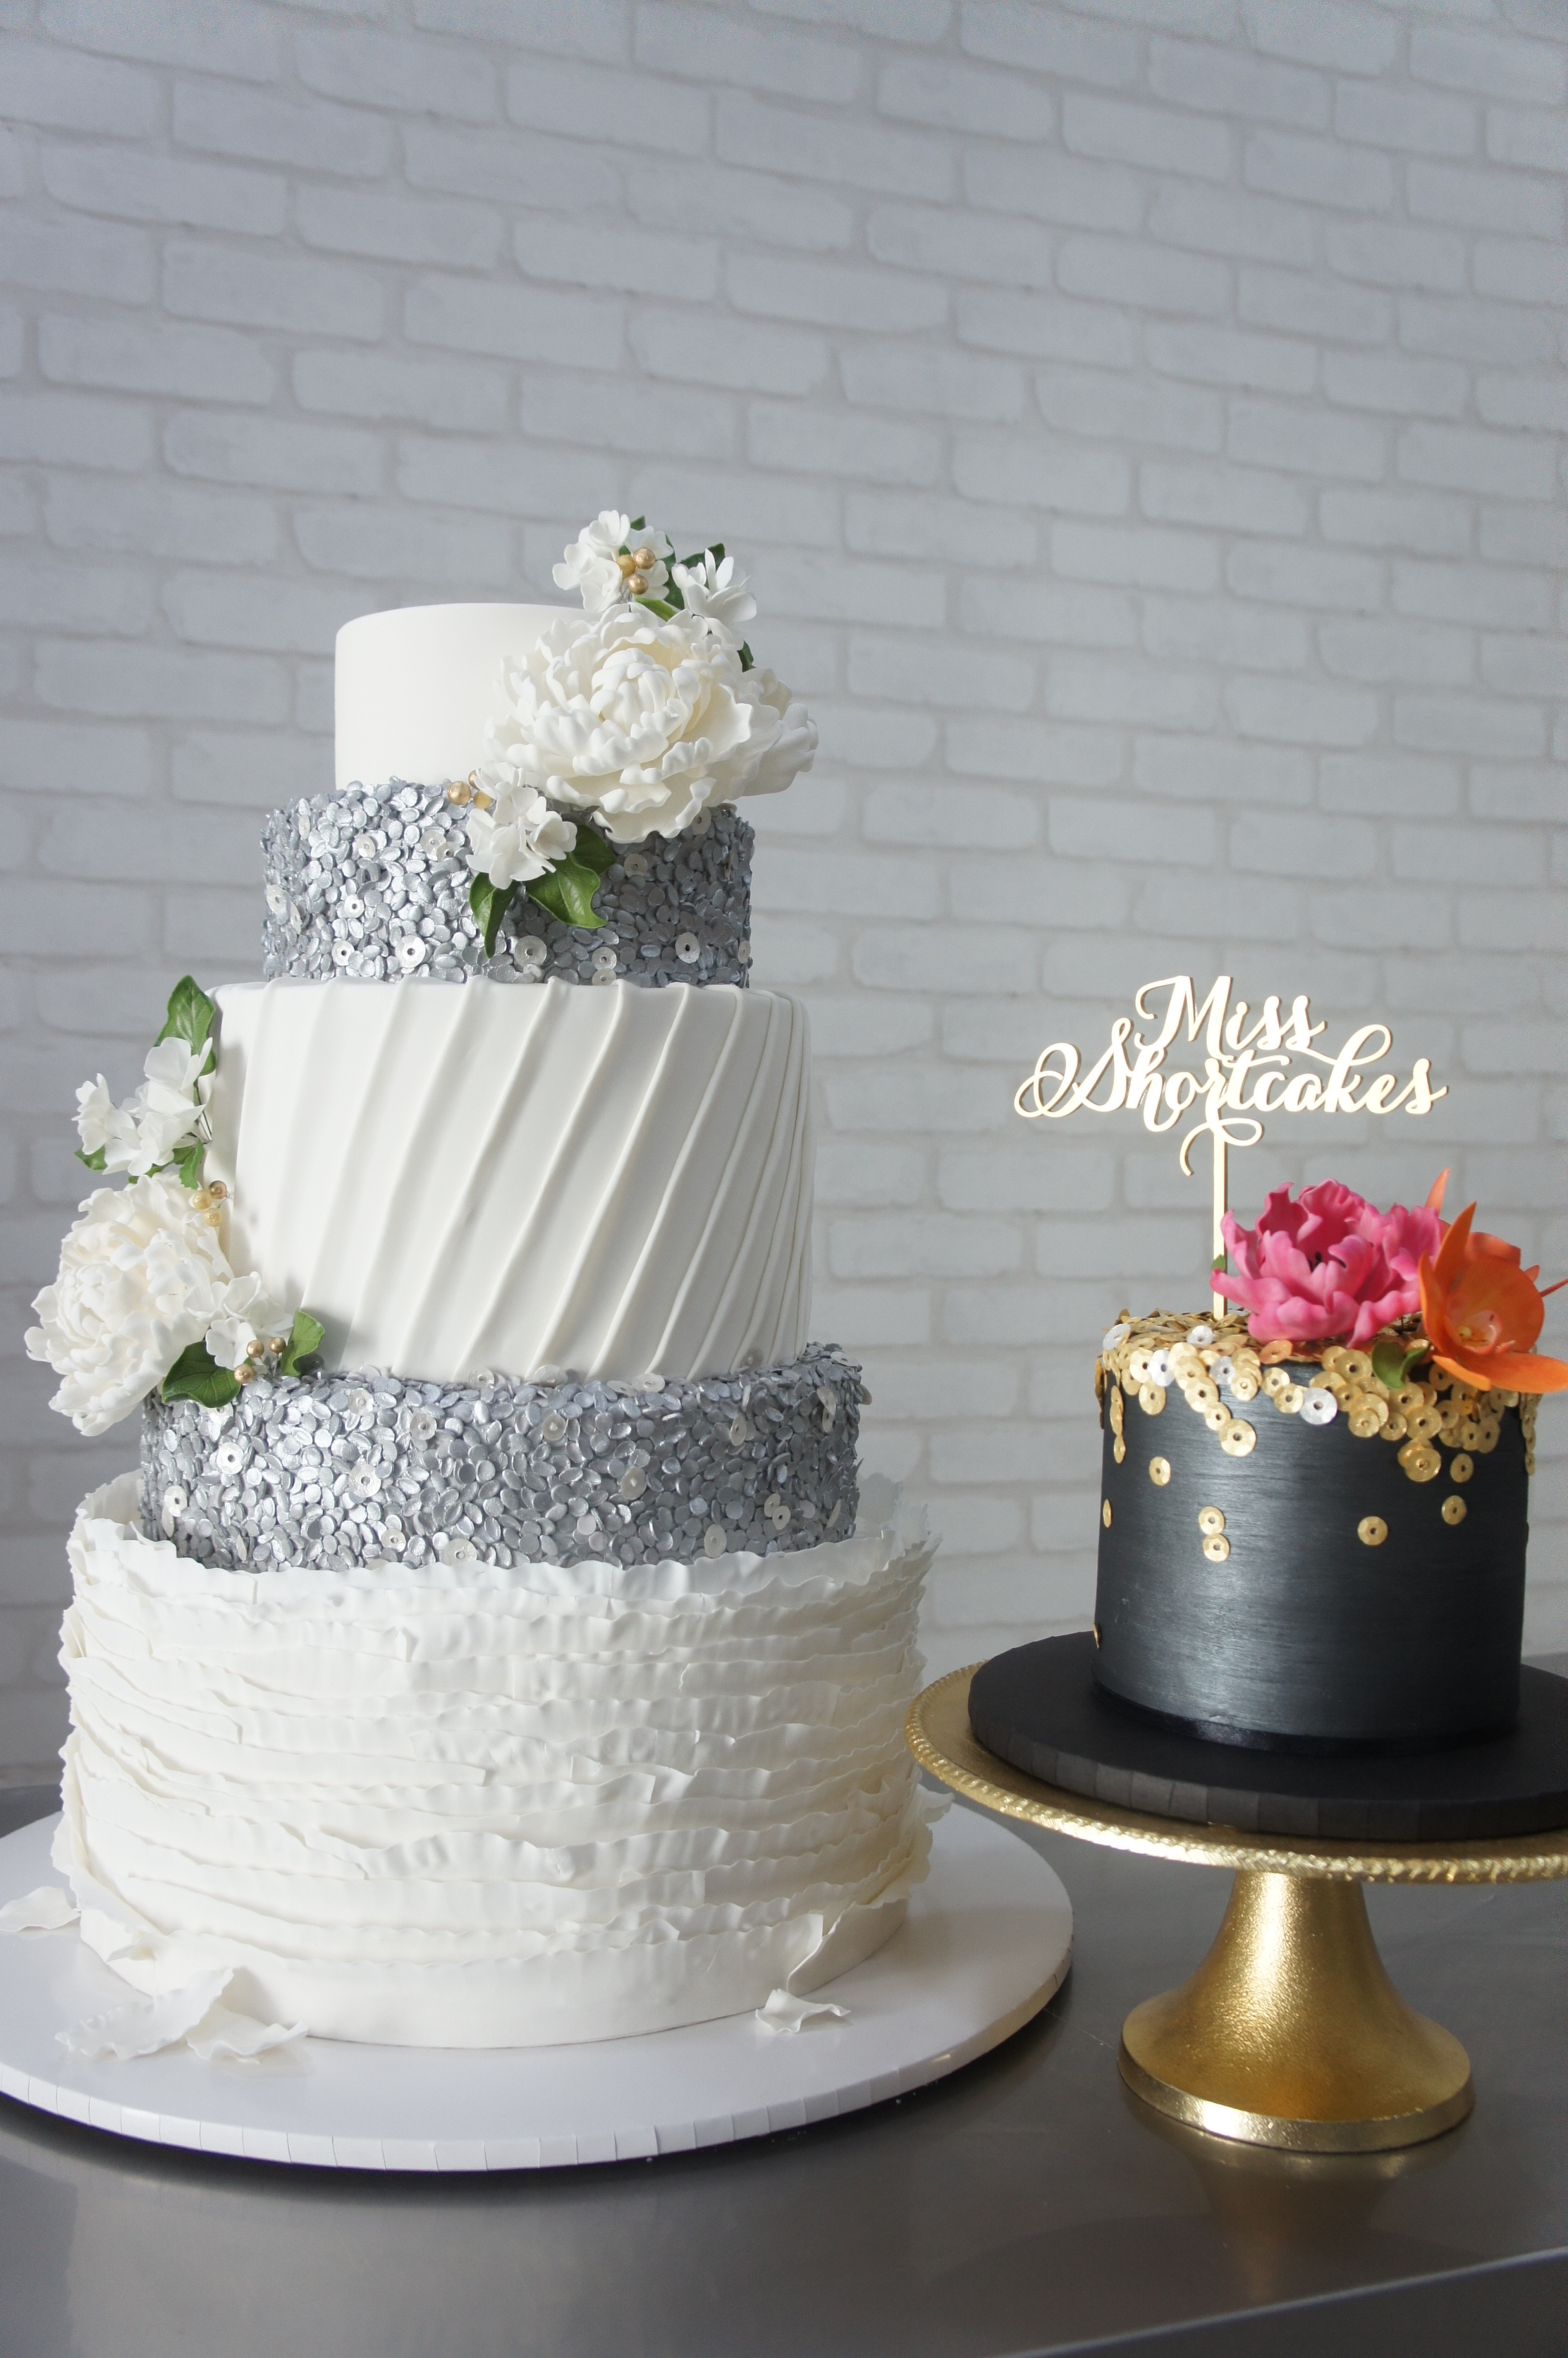 Silver sparkle and white fondant wedding cake